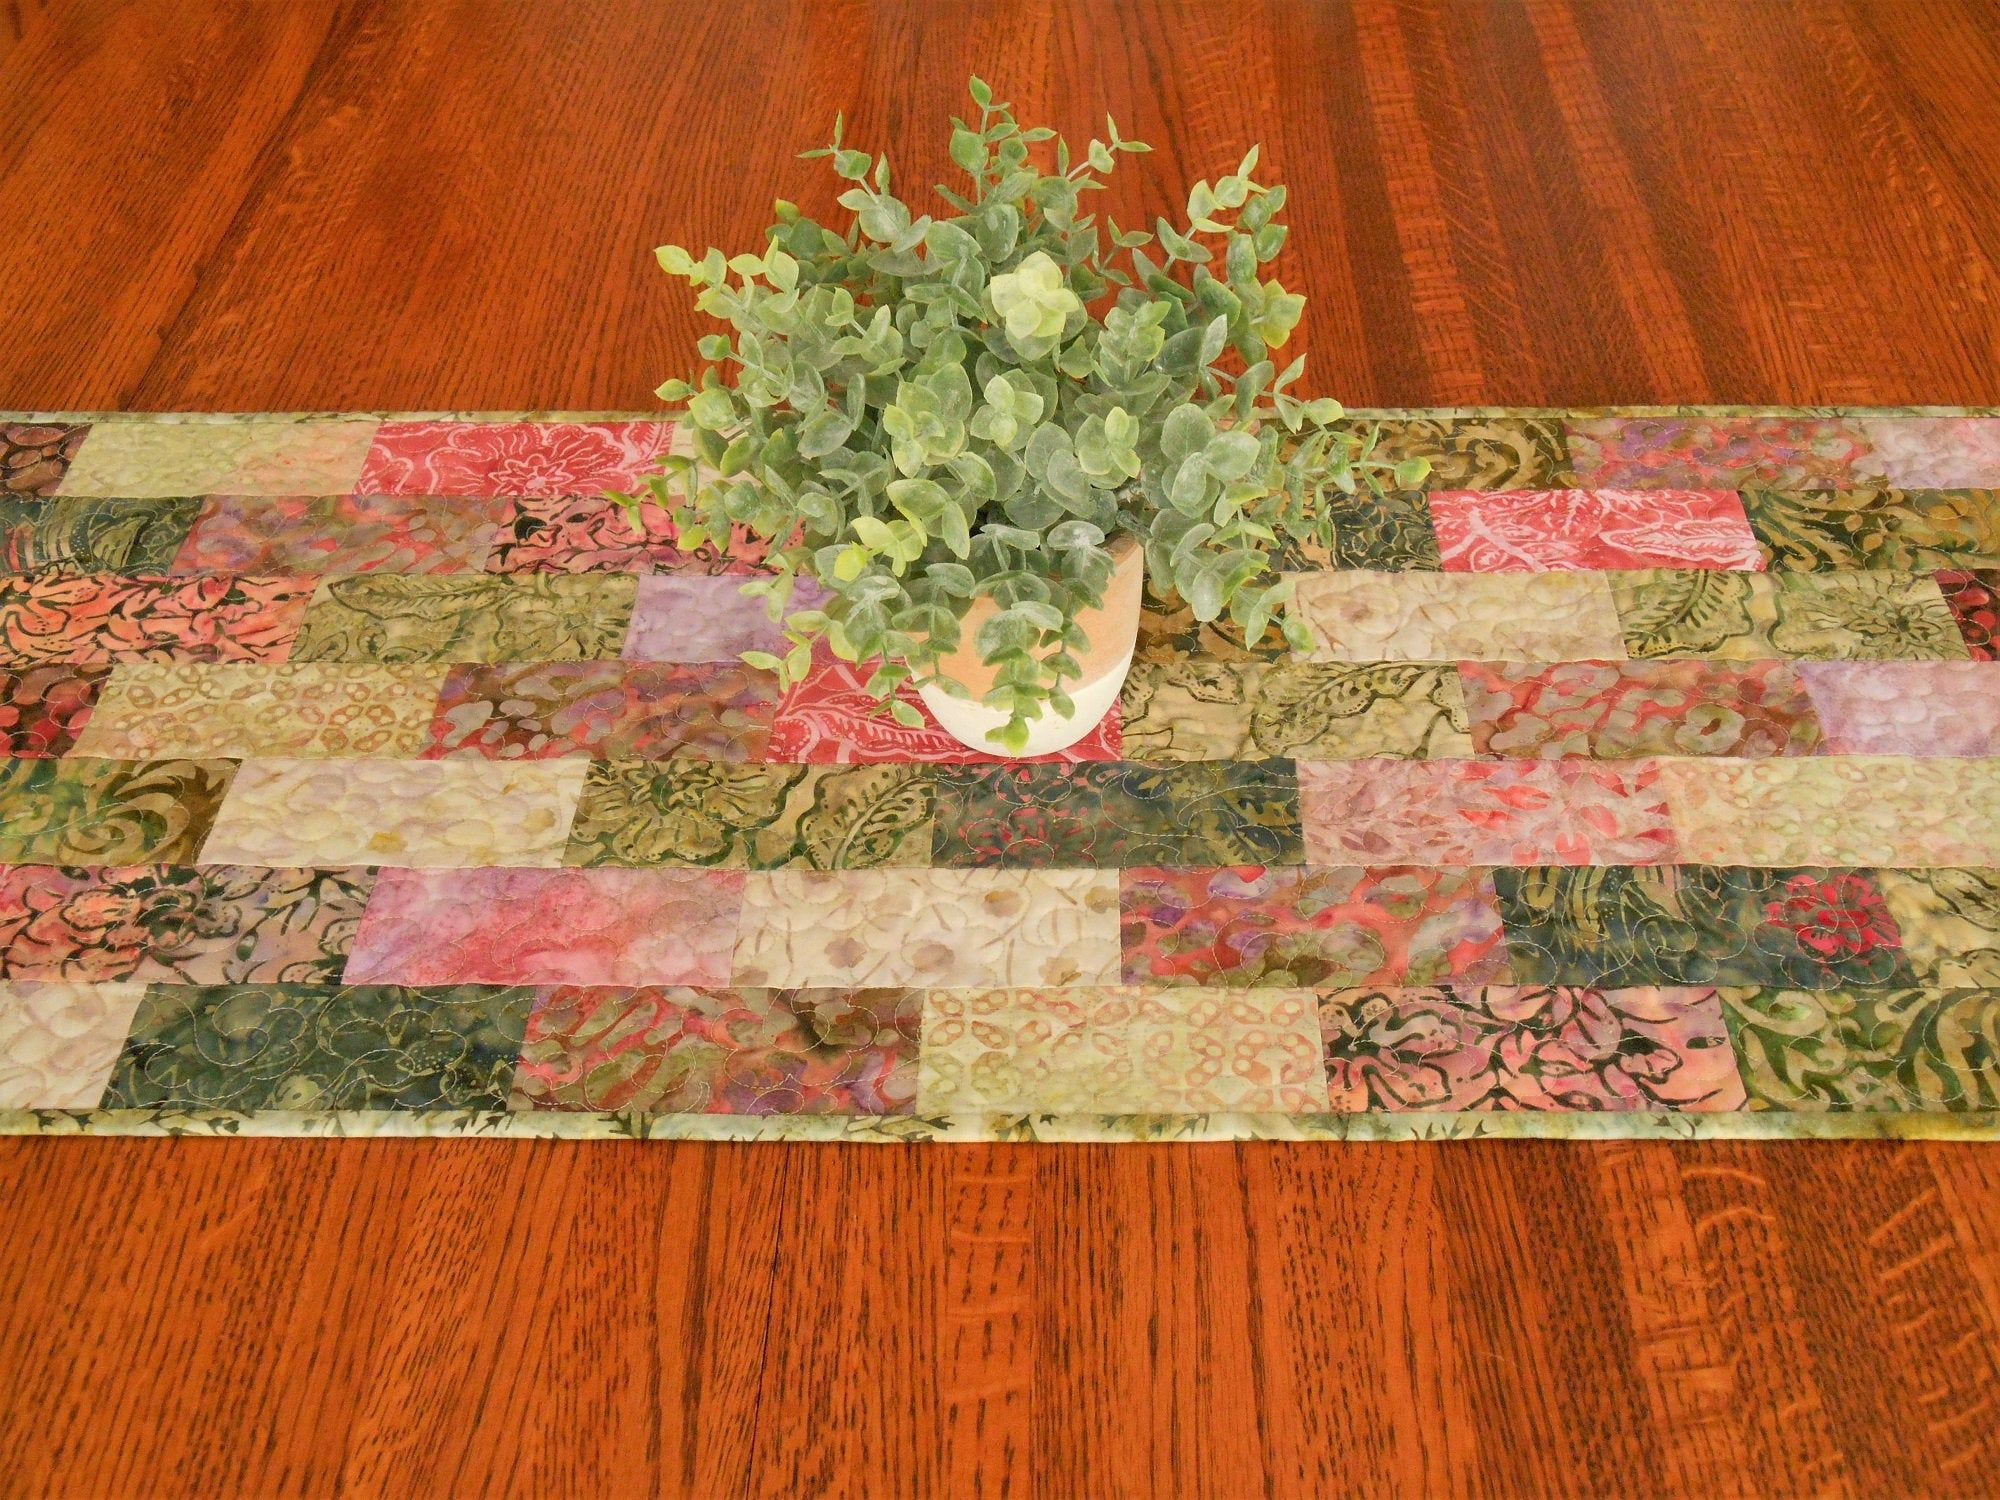 Quilted Batik Table Runner In Shades Of Green And Pink Coffee Table Runner Small Dining Table Runner Batik Table Runners Table Runners Dining Table Runners